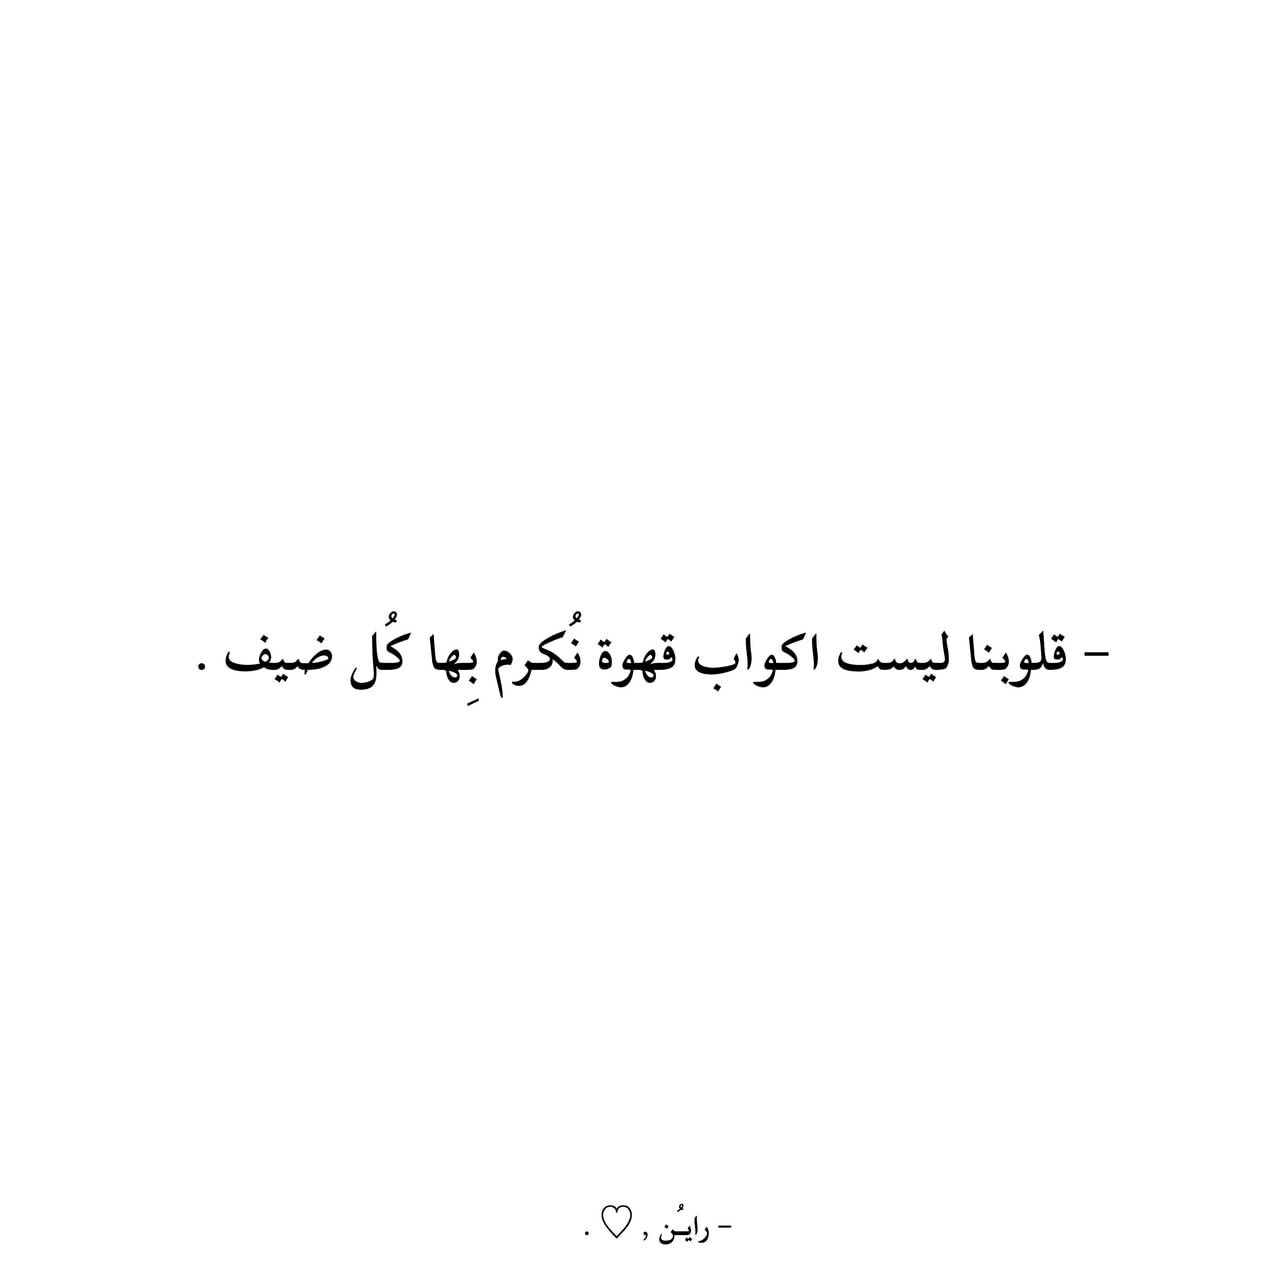 Pin By Omneh On اقتباس Arabic Love Quotes Quotations Quotes